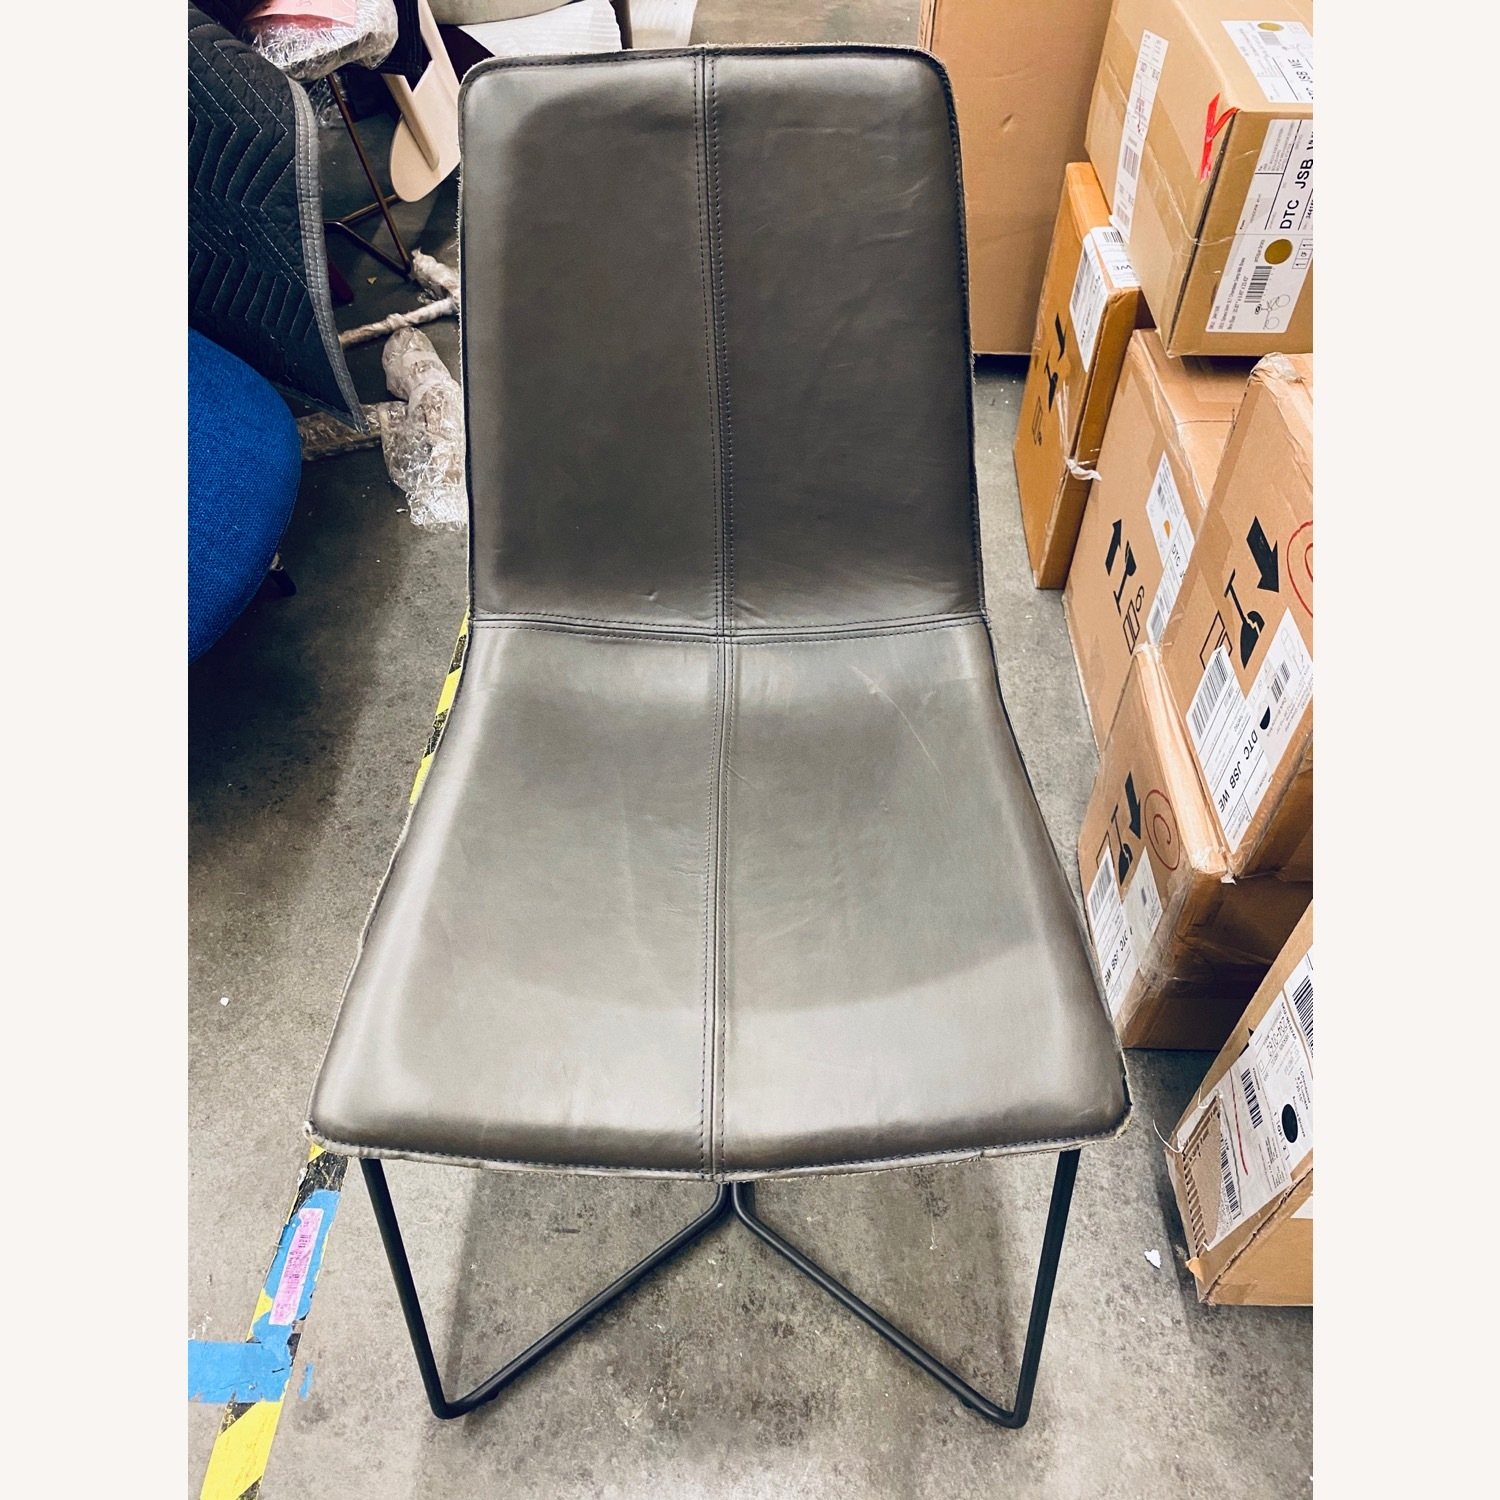 West Elm Slope Dining Chair in Charcoal Leather - image-4